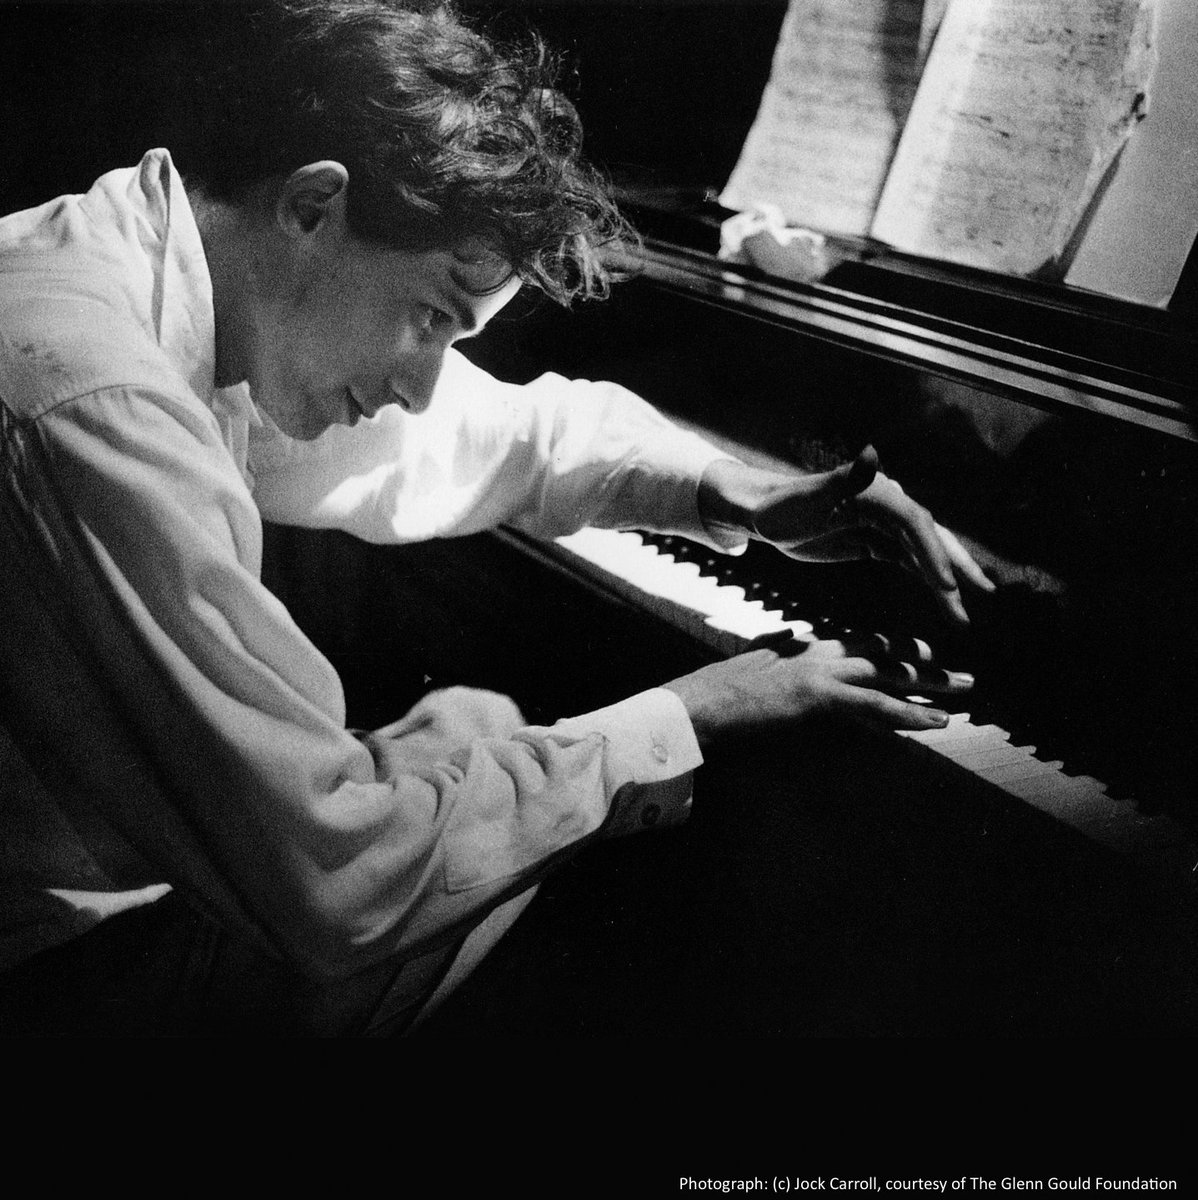 I believe that the only excuse we have for being musicians and for making music in any fashion, is to make it differently, to perform it differently, to establish the music&#39;s difference, vis-a-vis our own difference.&quot; #GlennGould Ph: Jock Carroll courtesy of @GlennGouldFndn<br>http://pic.twitter.com/tWMrlosIqZ